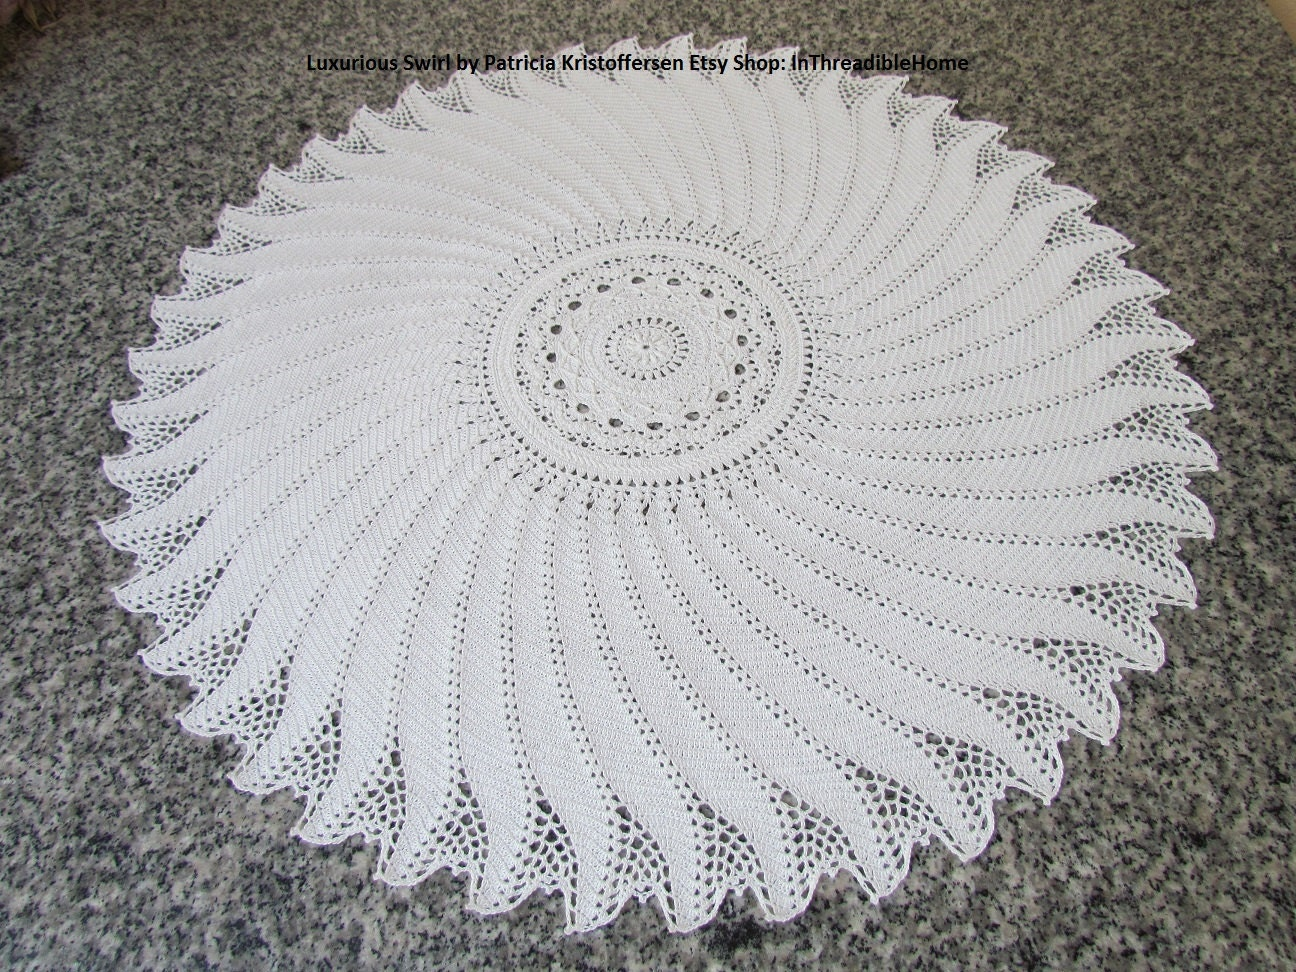 Luxurious Swirl Large Crochet Tablecloth Crochet Doily Pdf